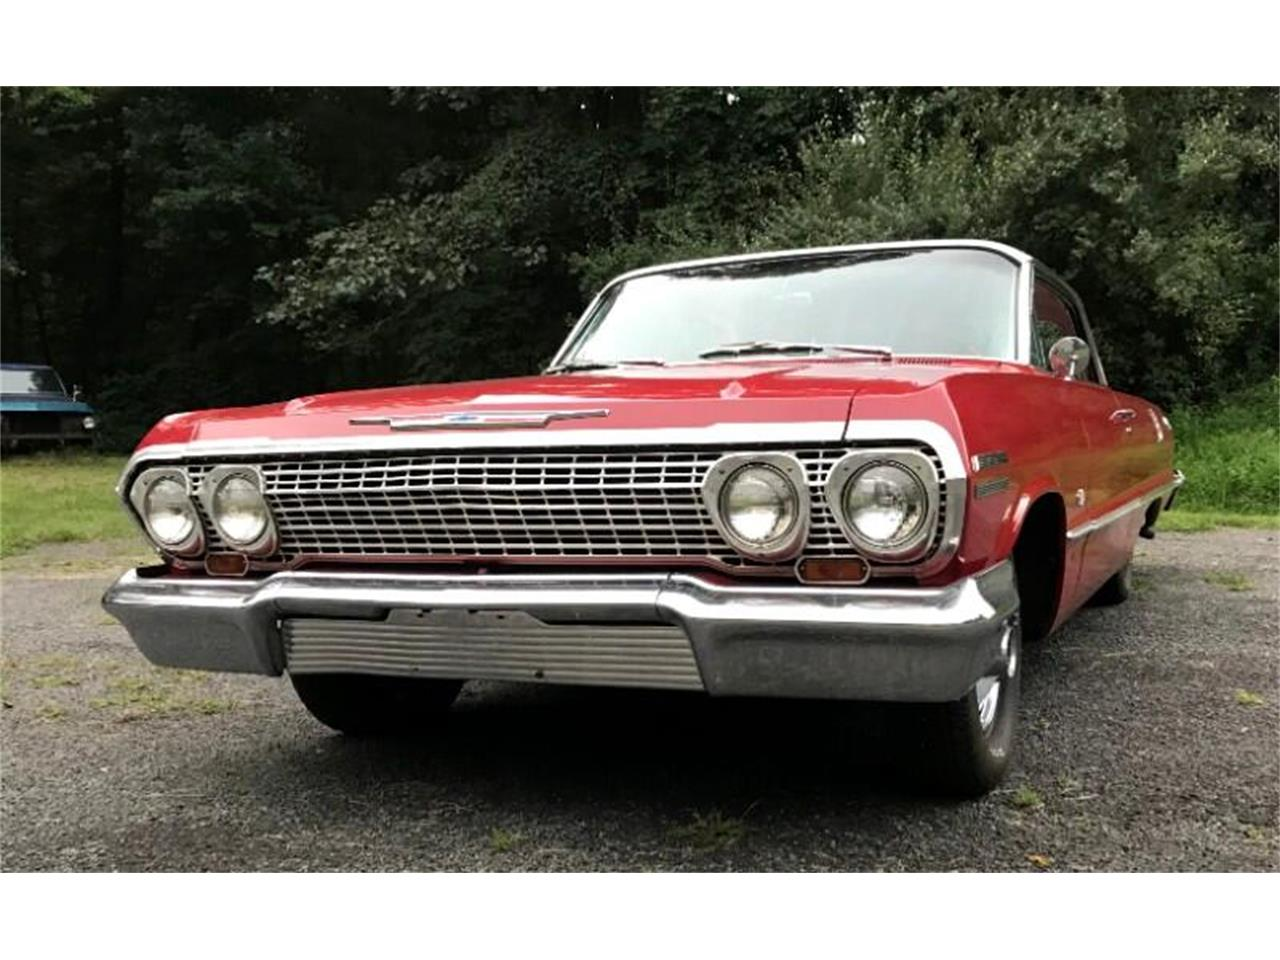 1963 Chevrolet Impala SS (CC-1385035) for sale in Harpers Ferry, West Virginia